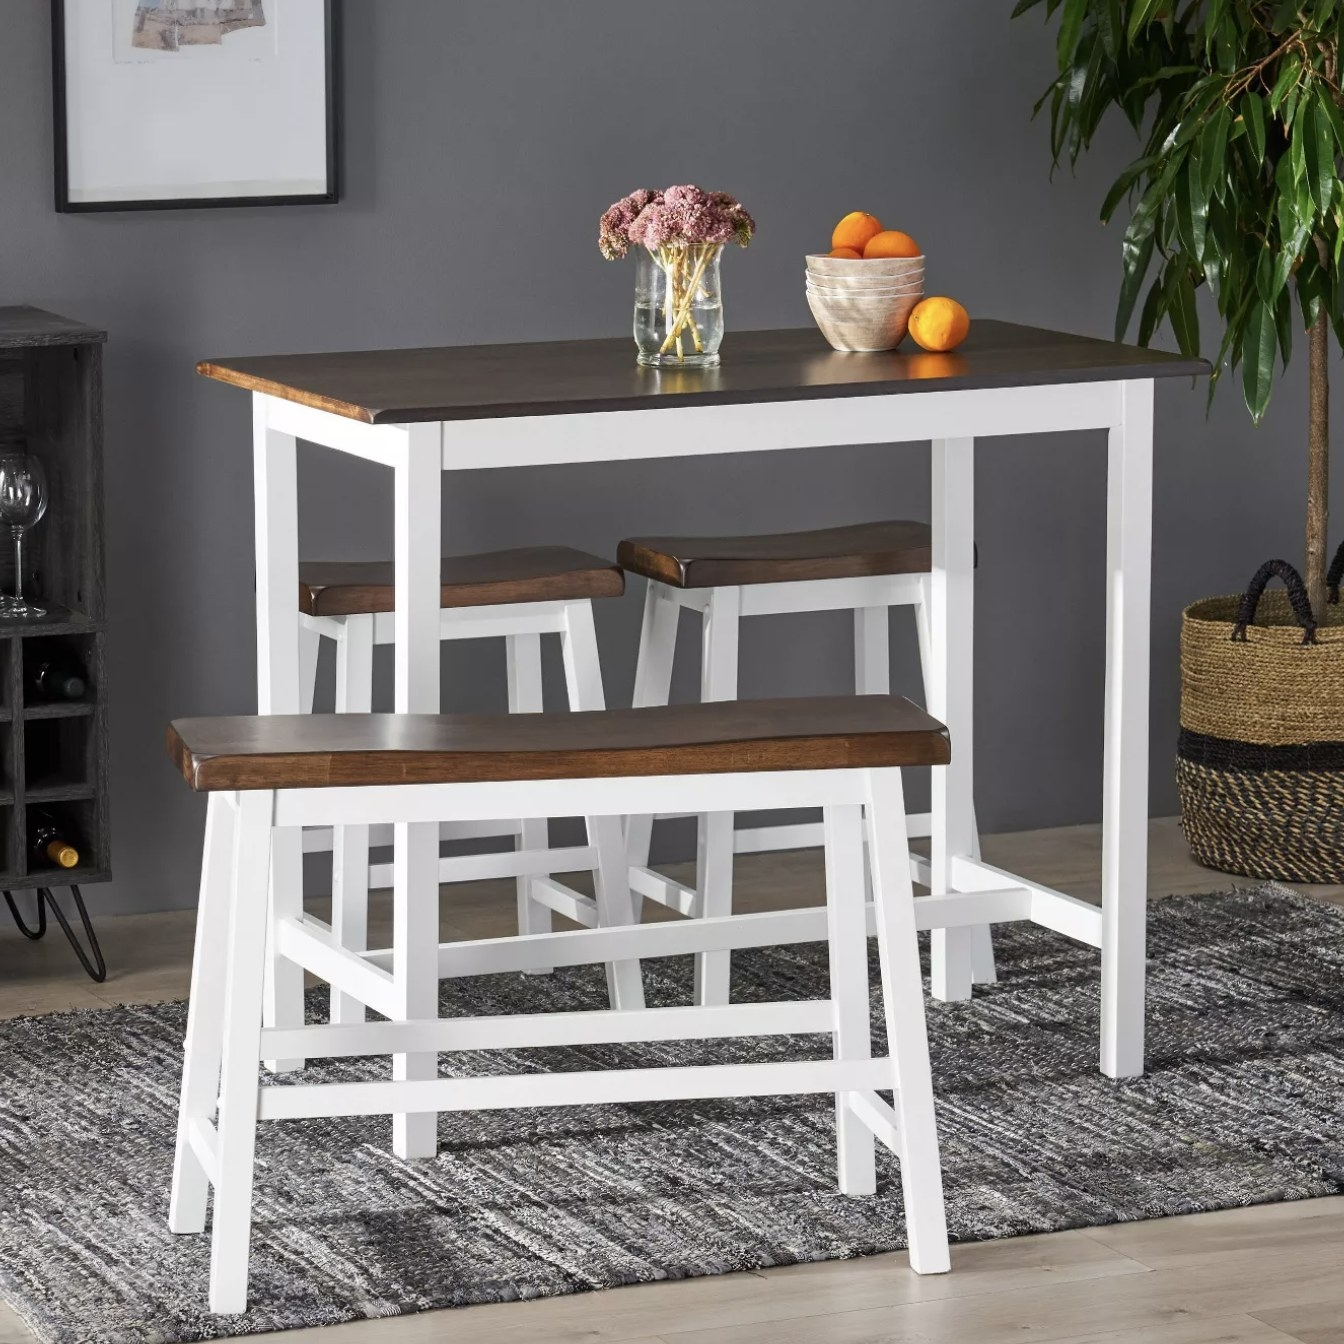 The white and wood dining set